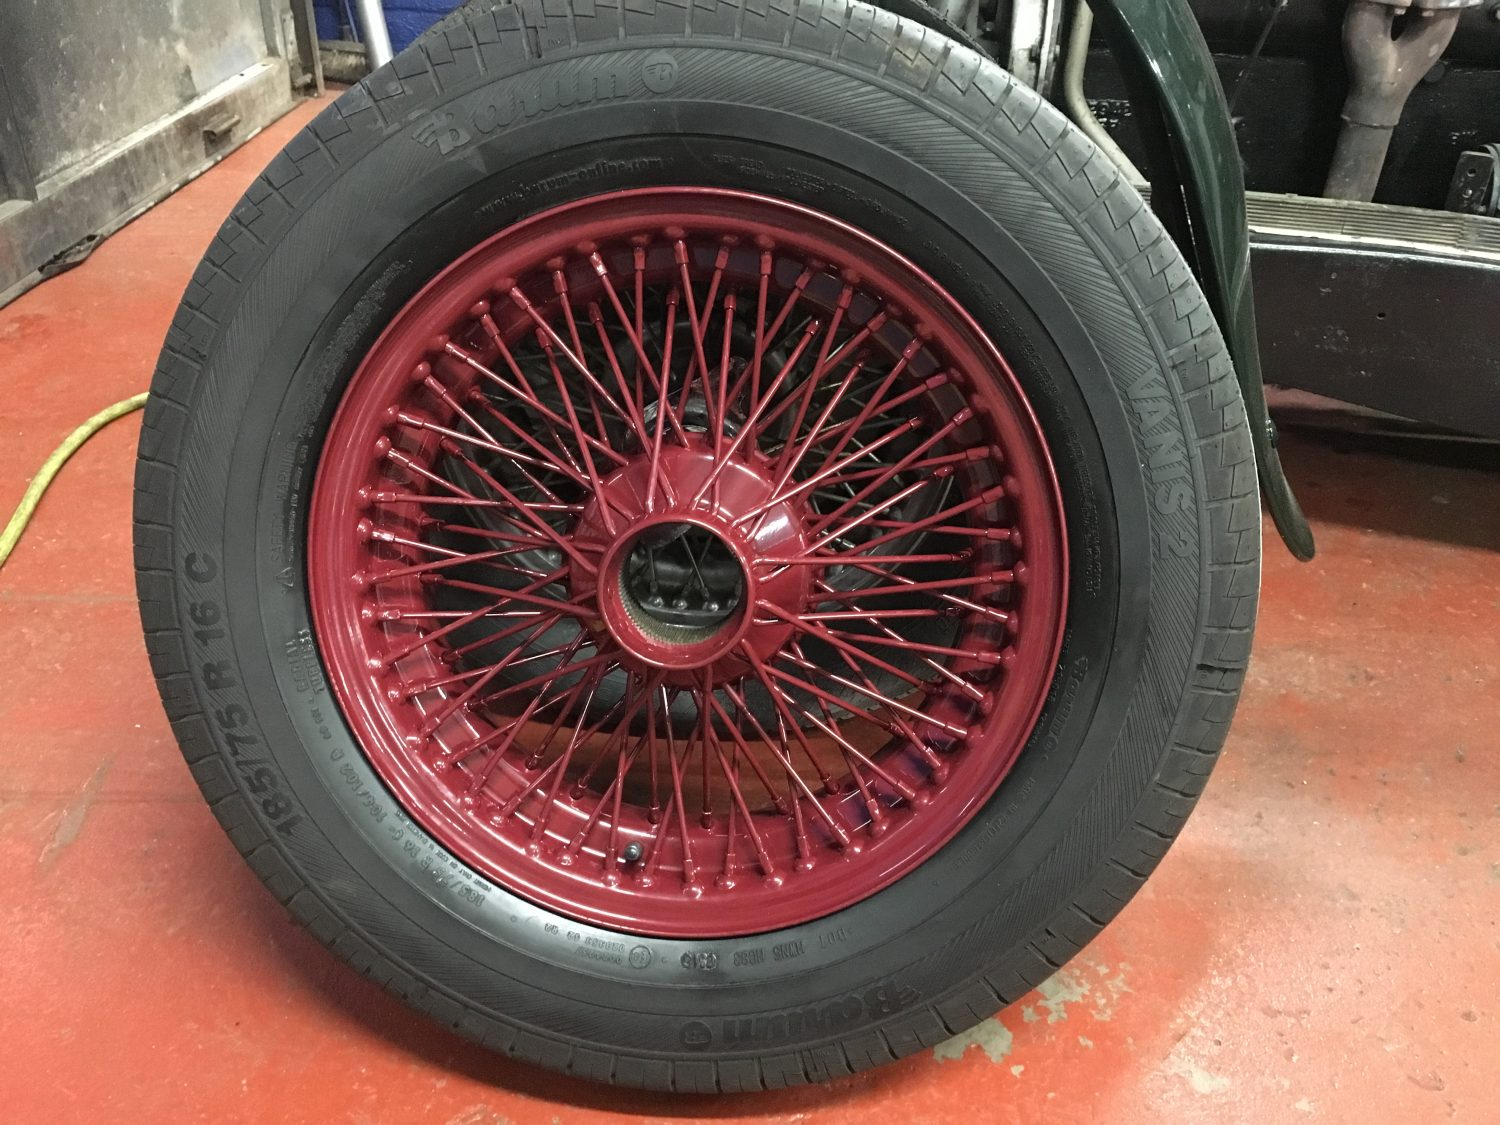 Transforming The Look Of The Wire Wheels Bridge Classic Cars Bridge Classic Cars